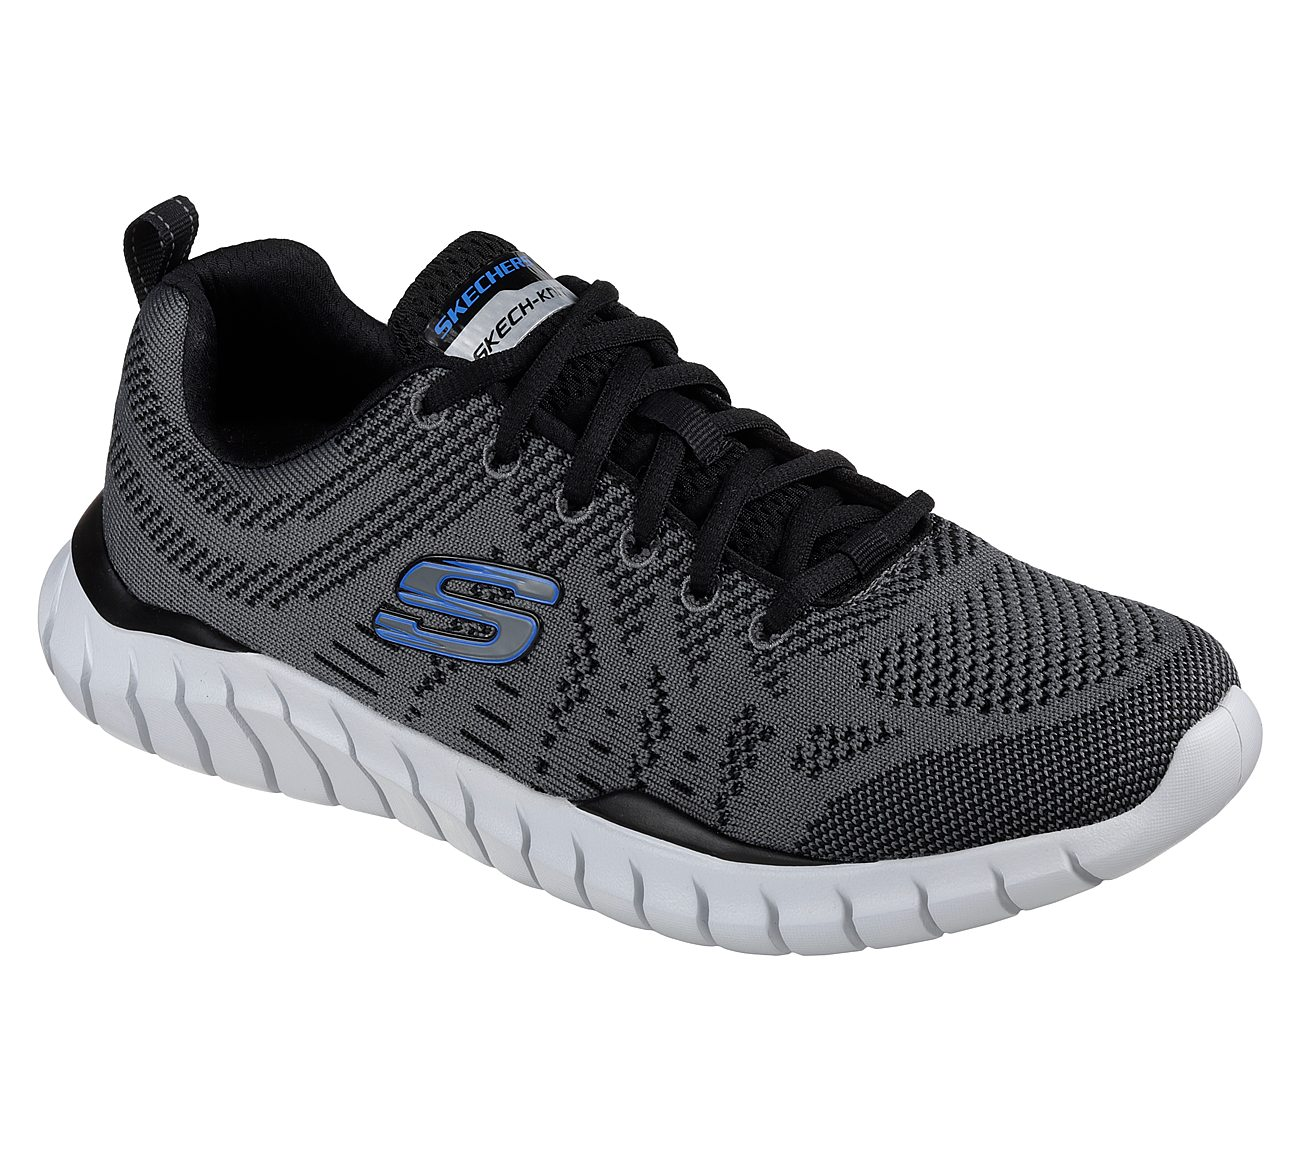 skechers com shoes